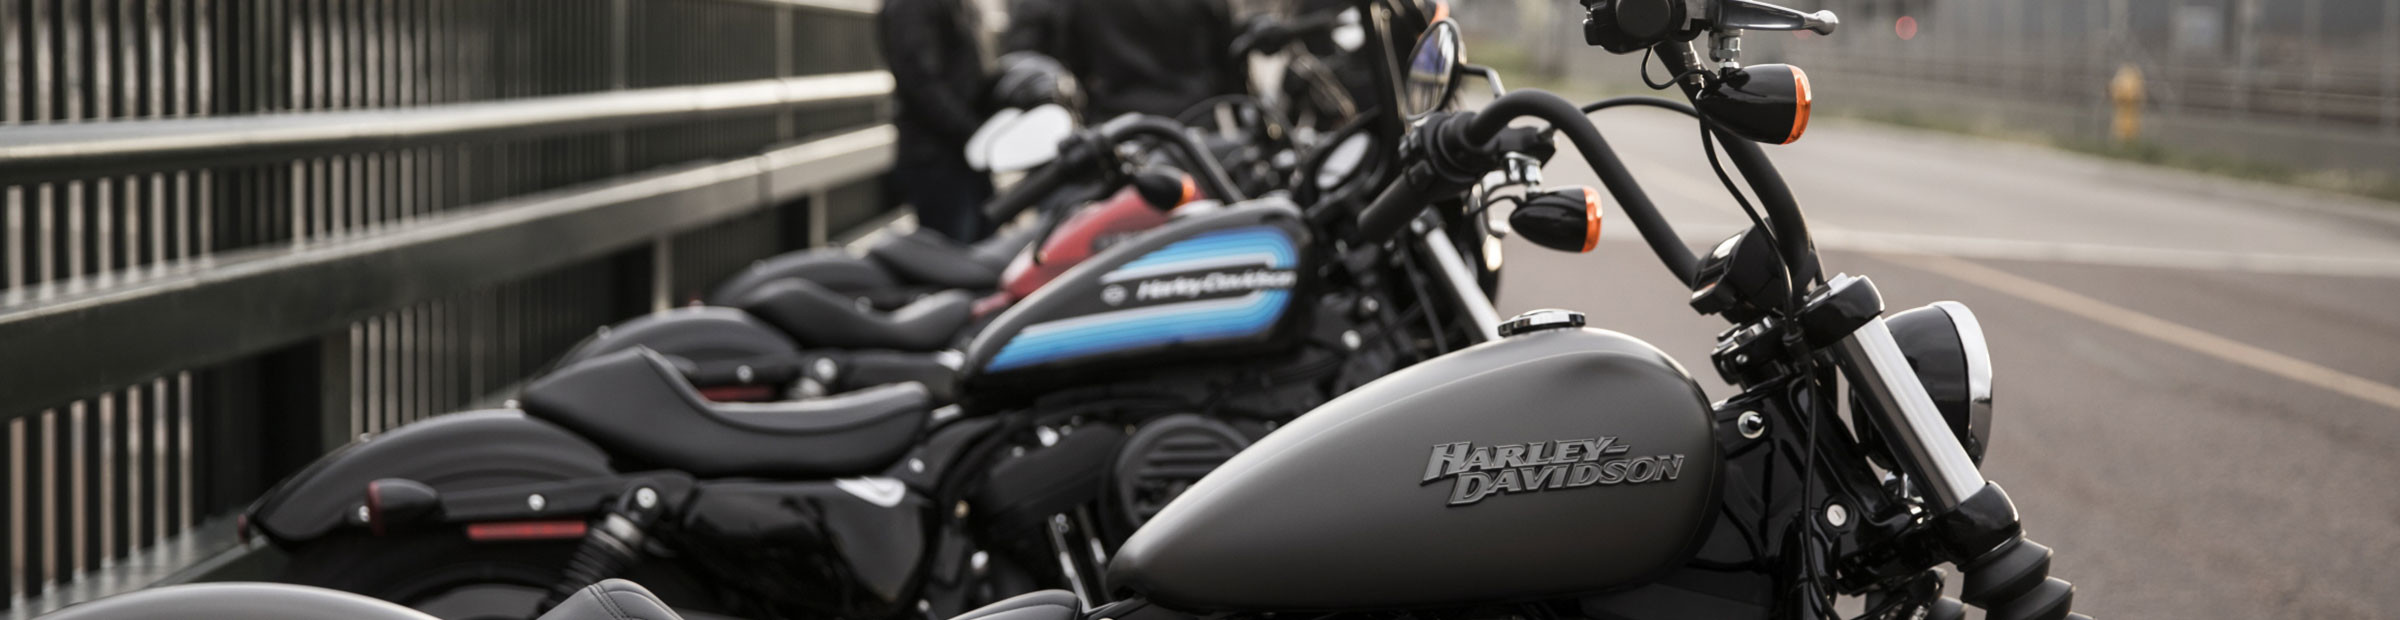 Trade-In Your Ride at Colonial Harley-Davidson®